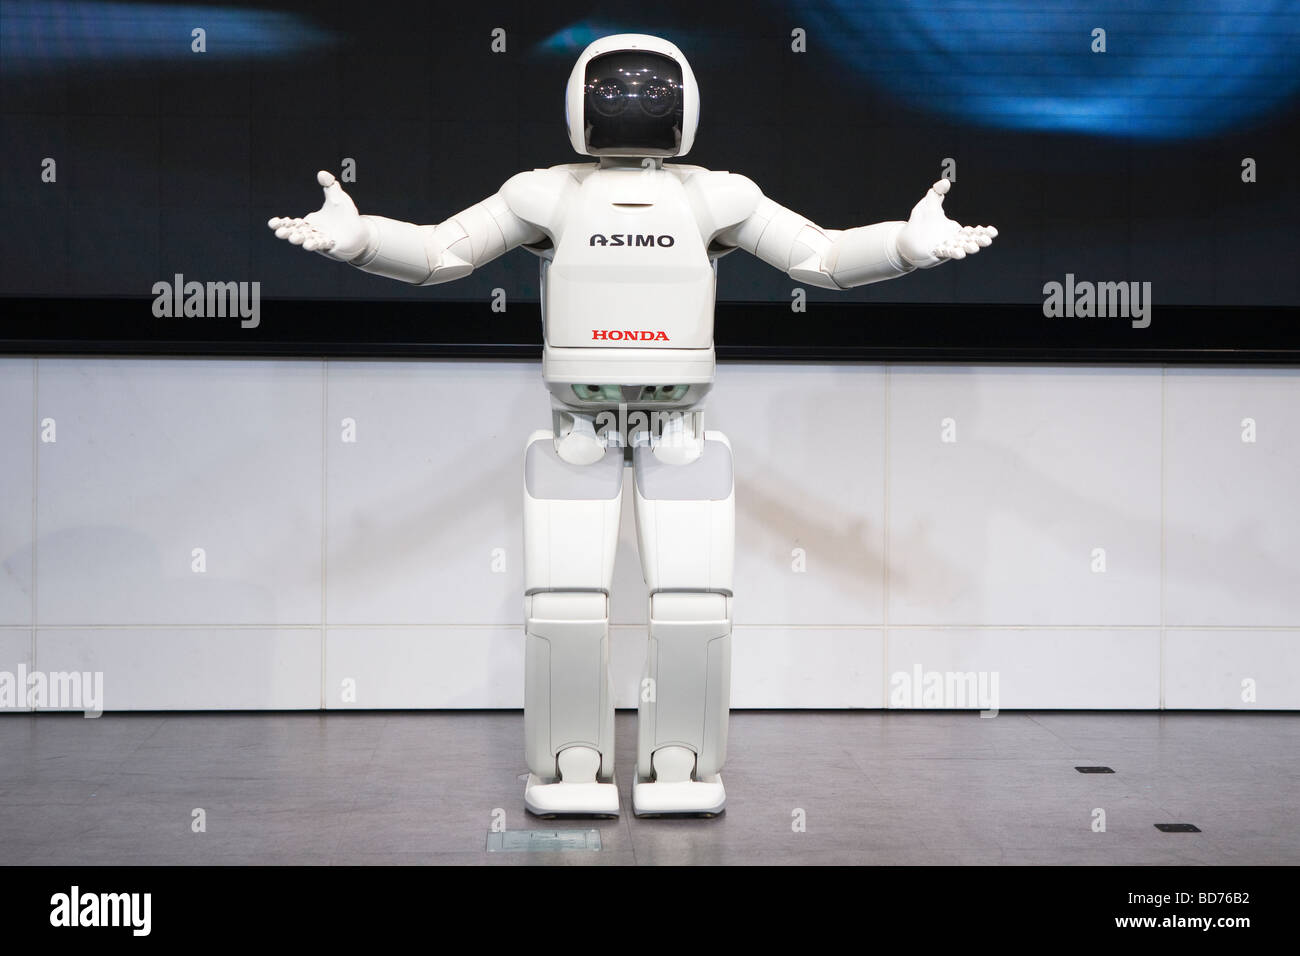 Asimo A Humanoid Robot Created By Honda Giving Performance On Stage At The Company Headquarters In Tokyo